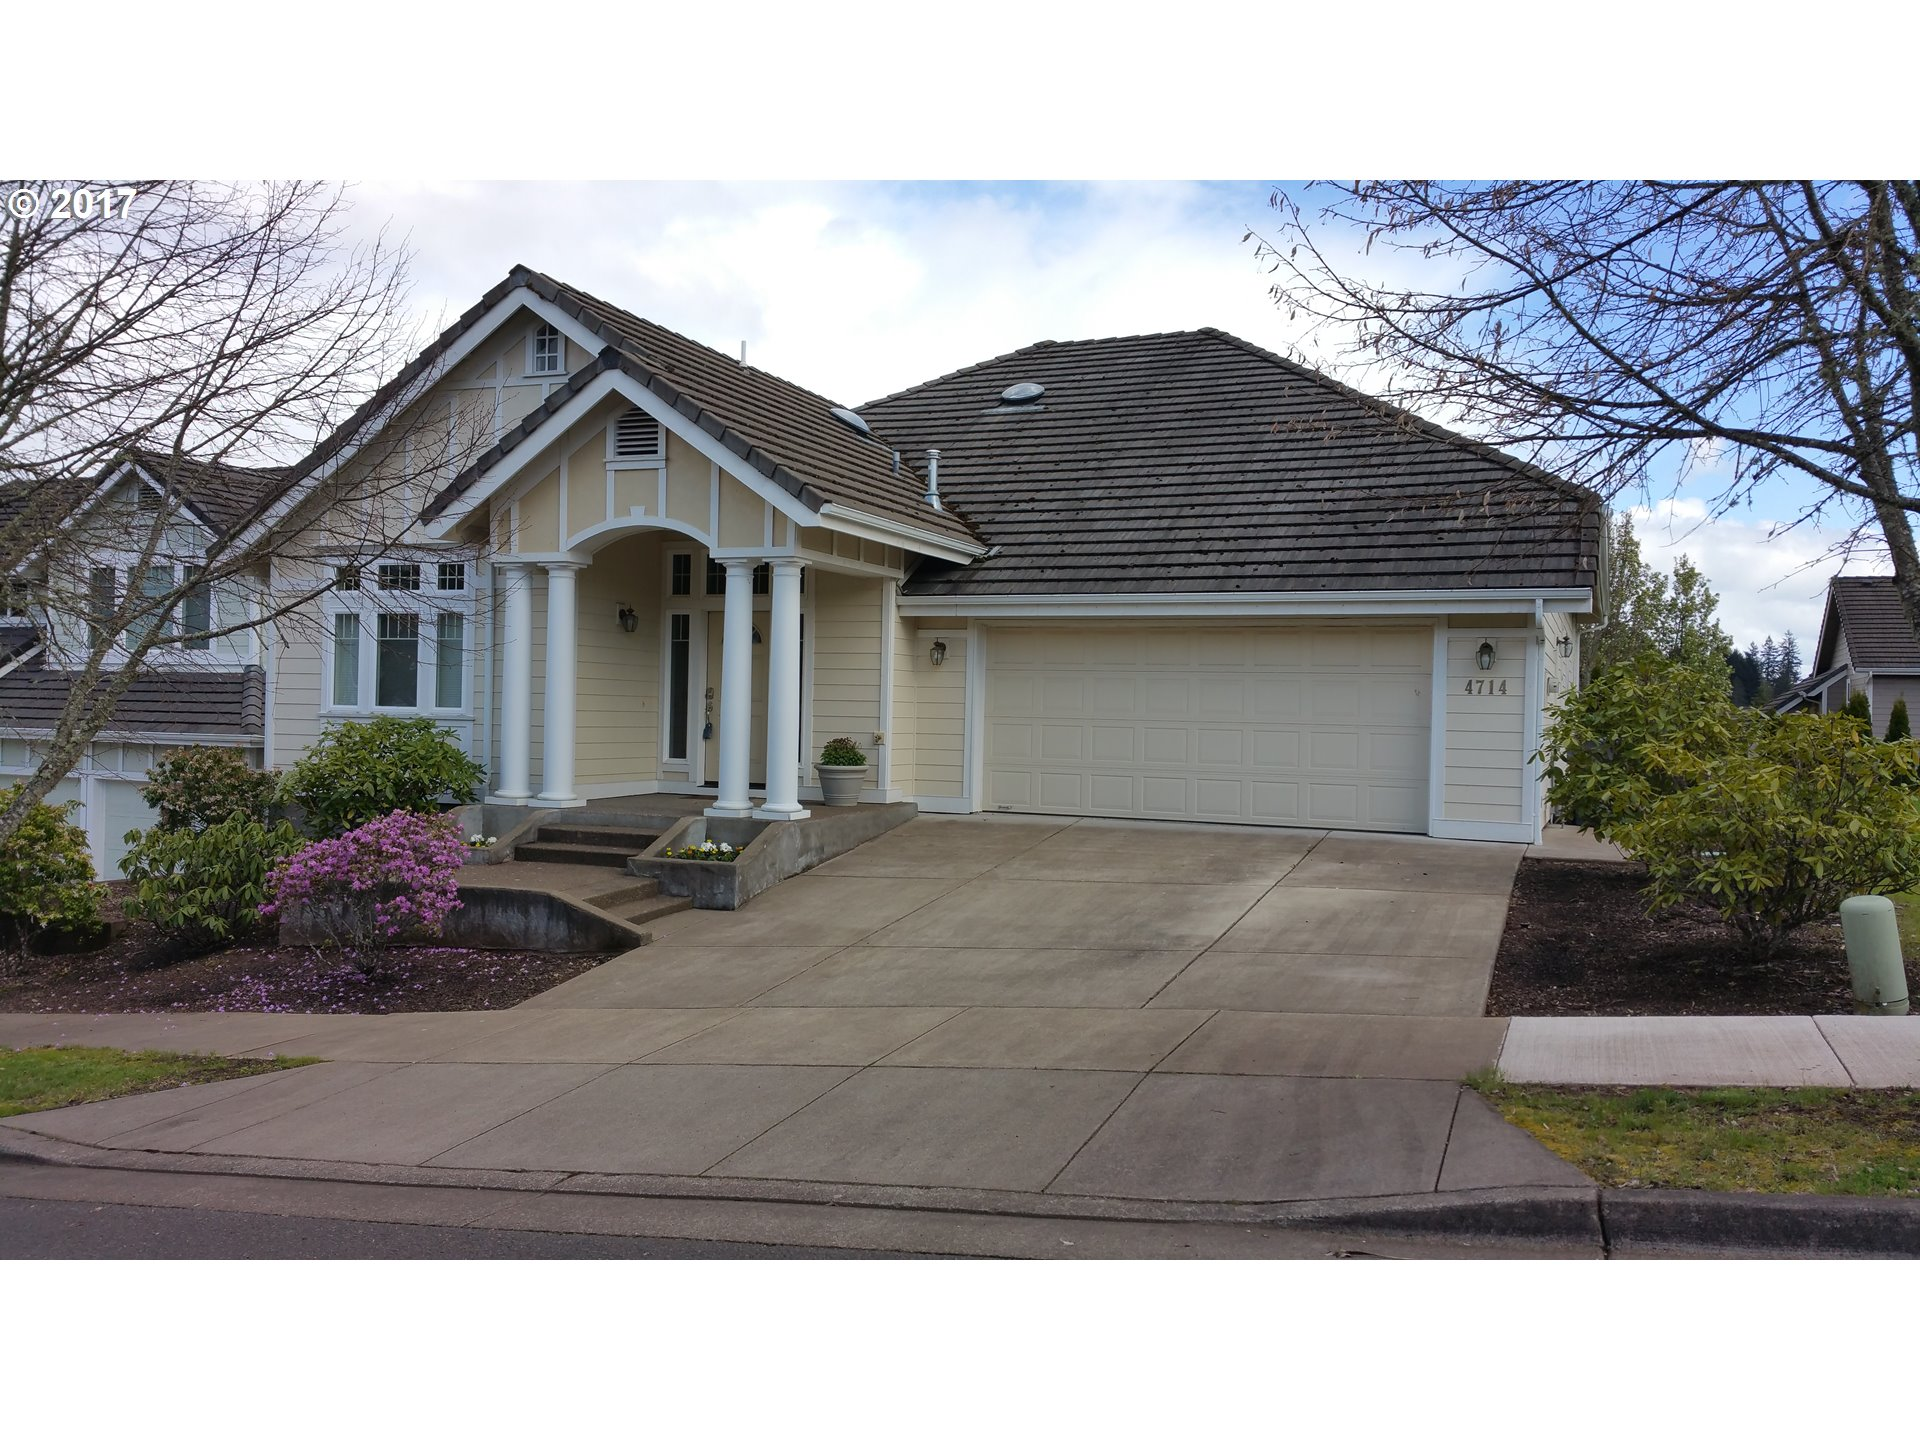 4714 NW Veronica PL, Corvallis, OR 97330